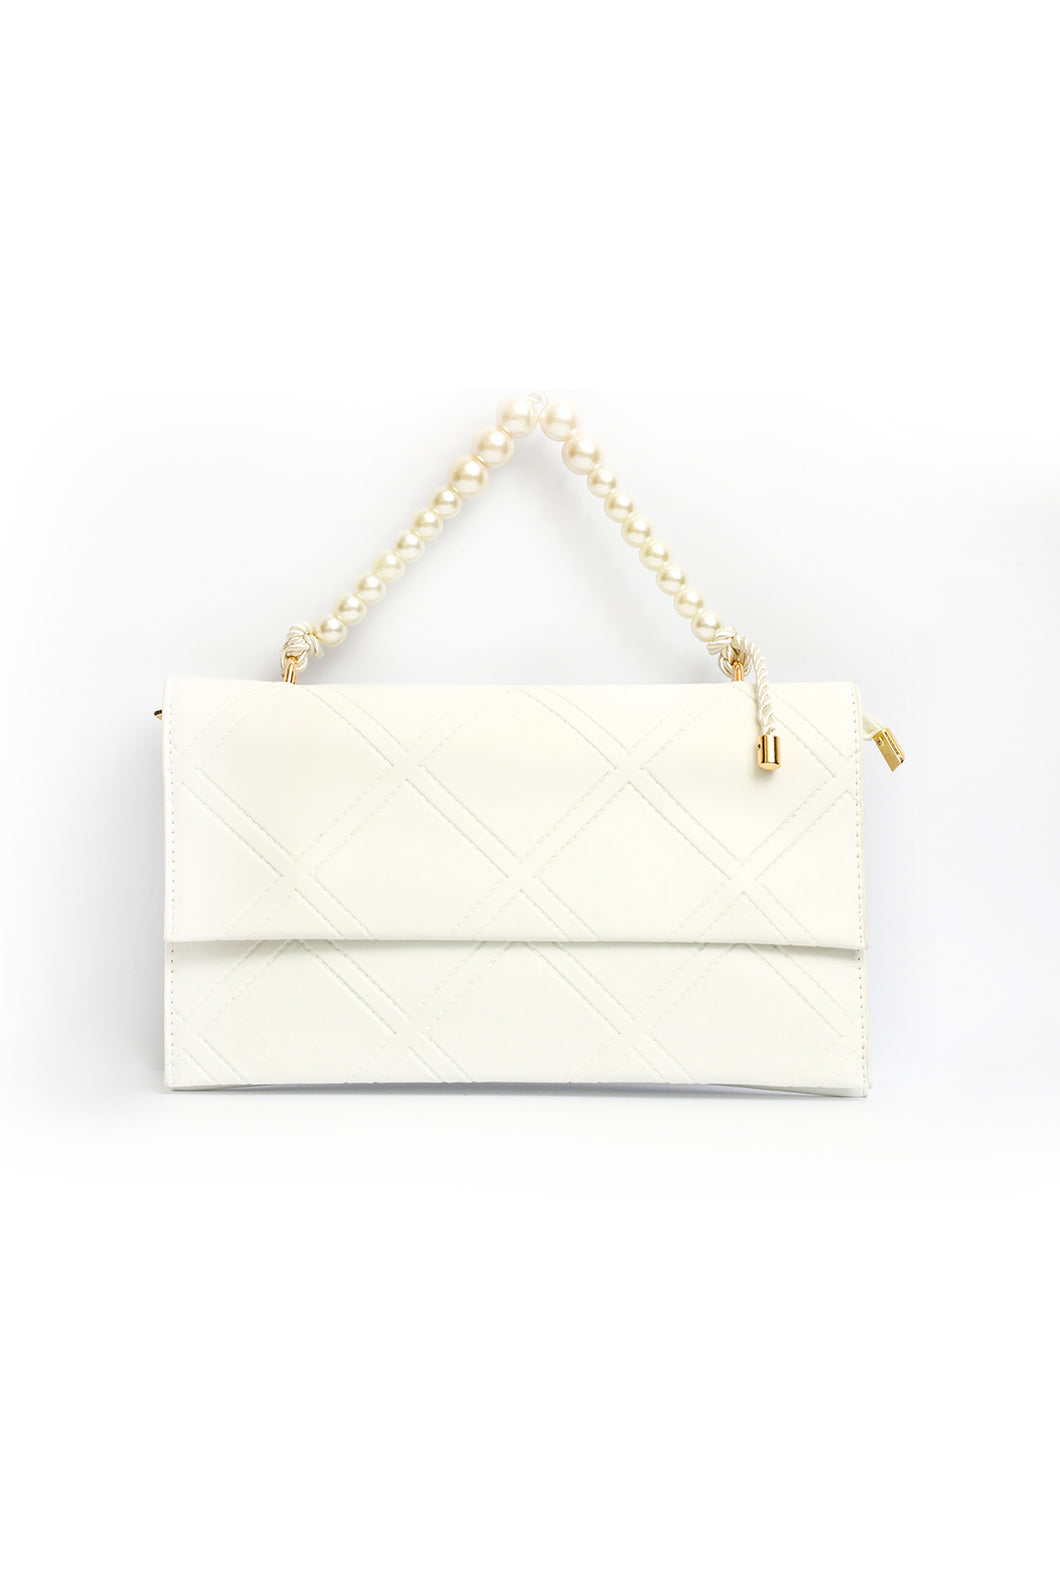 Pearl Handle Clutch - White